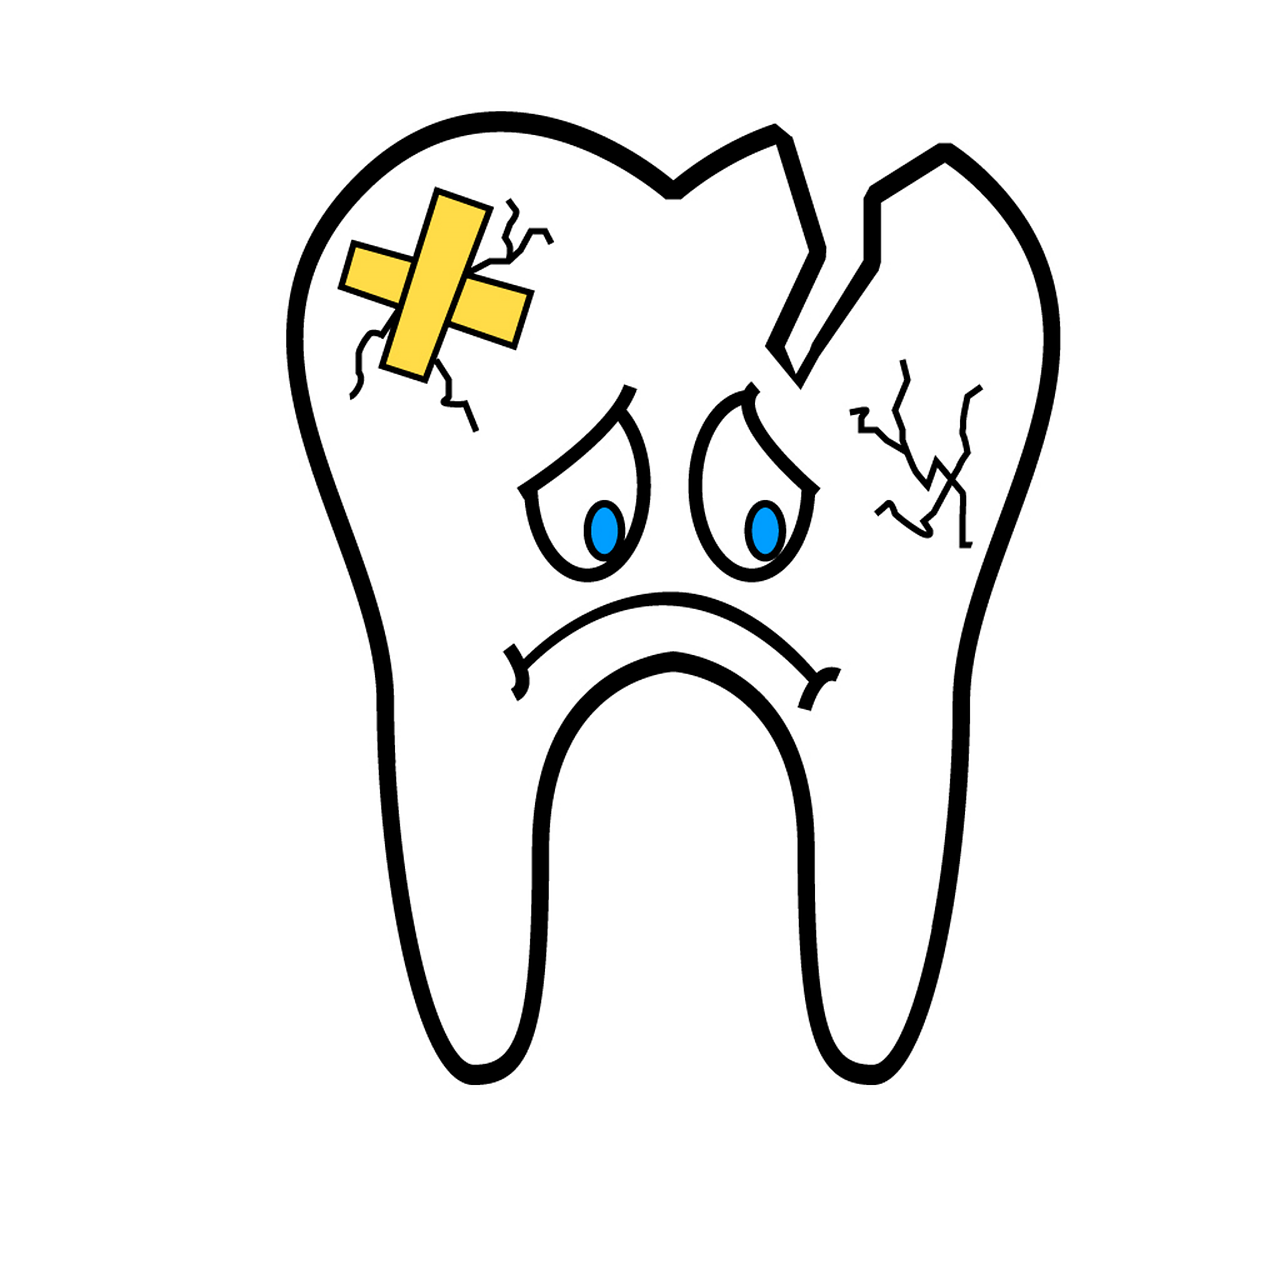 Lose a Filling? Don't Panic! Here's What You Can Do Until You See Your Dentist